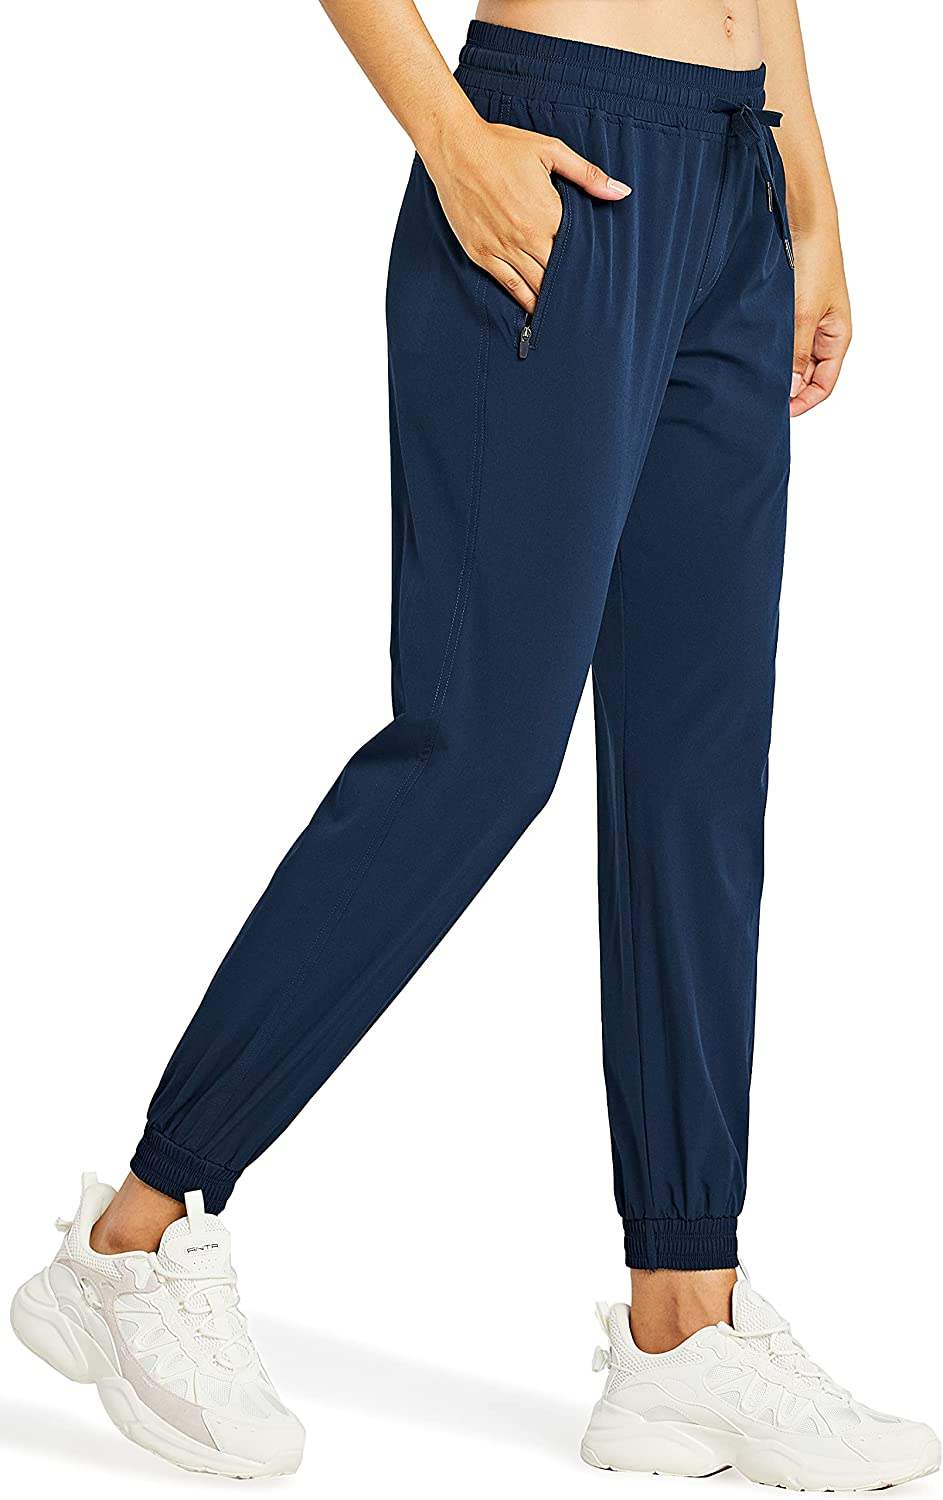 ZUTY Women's Cargo Soldering Hiking Pants Joggers Quick At Dry Popular product Lightweight